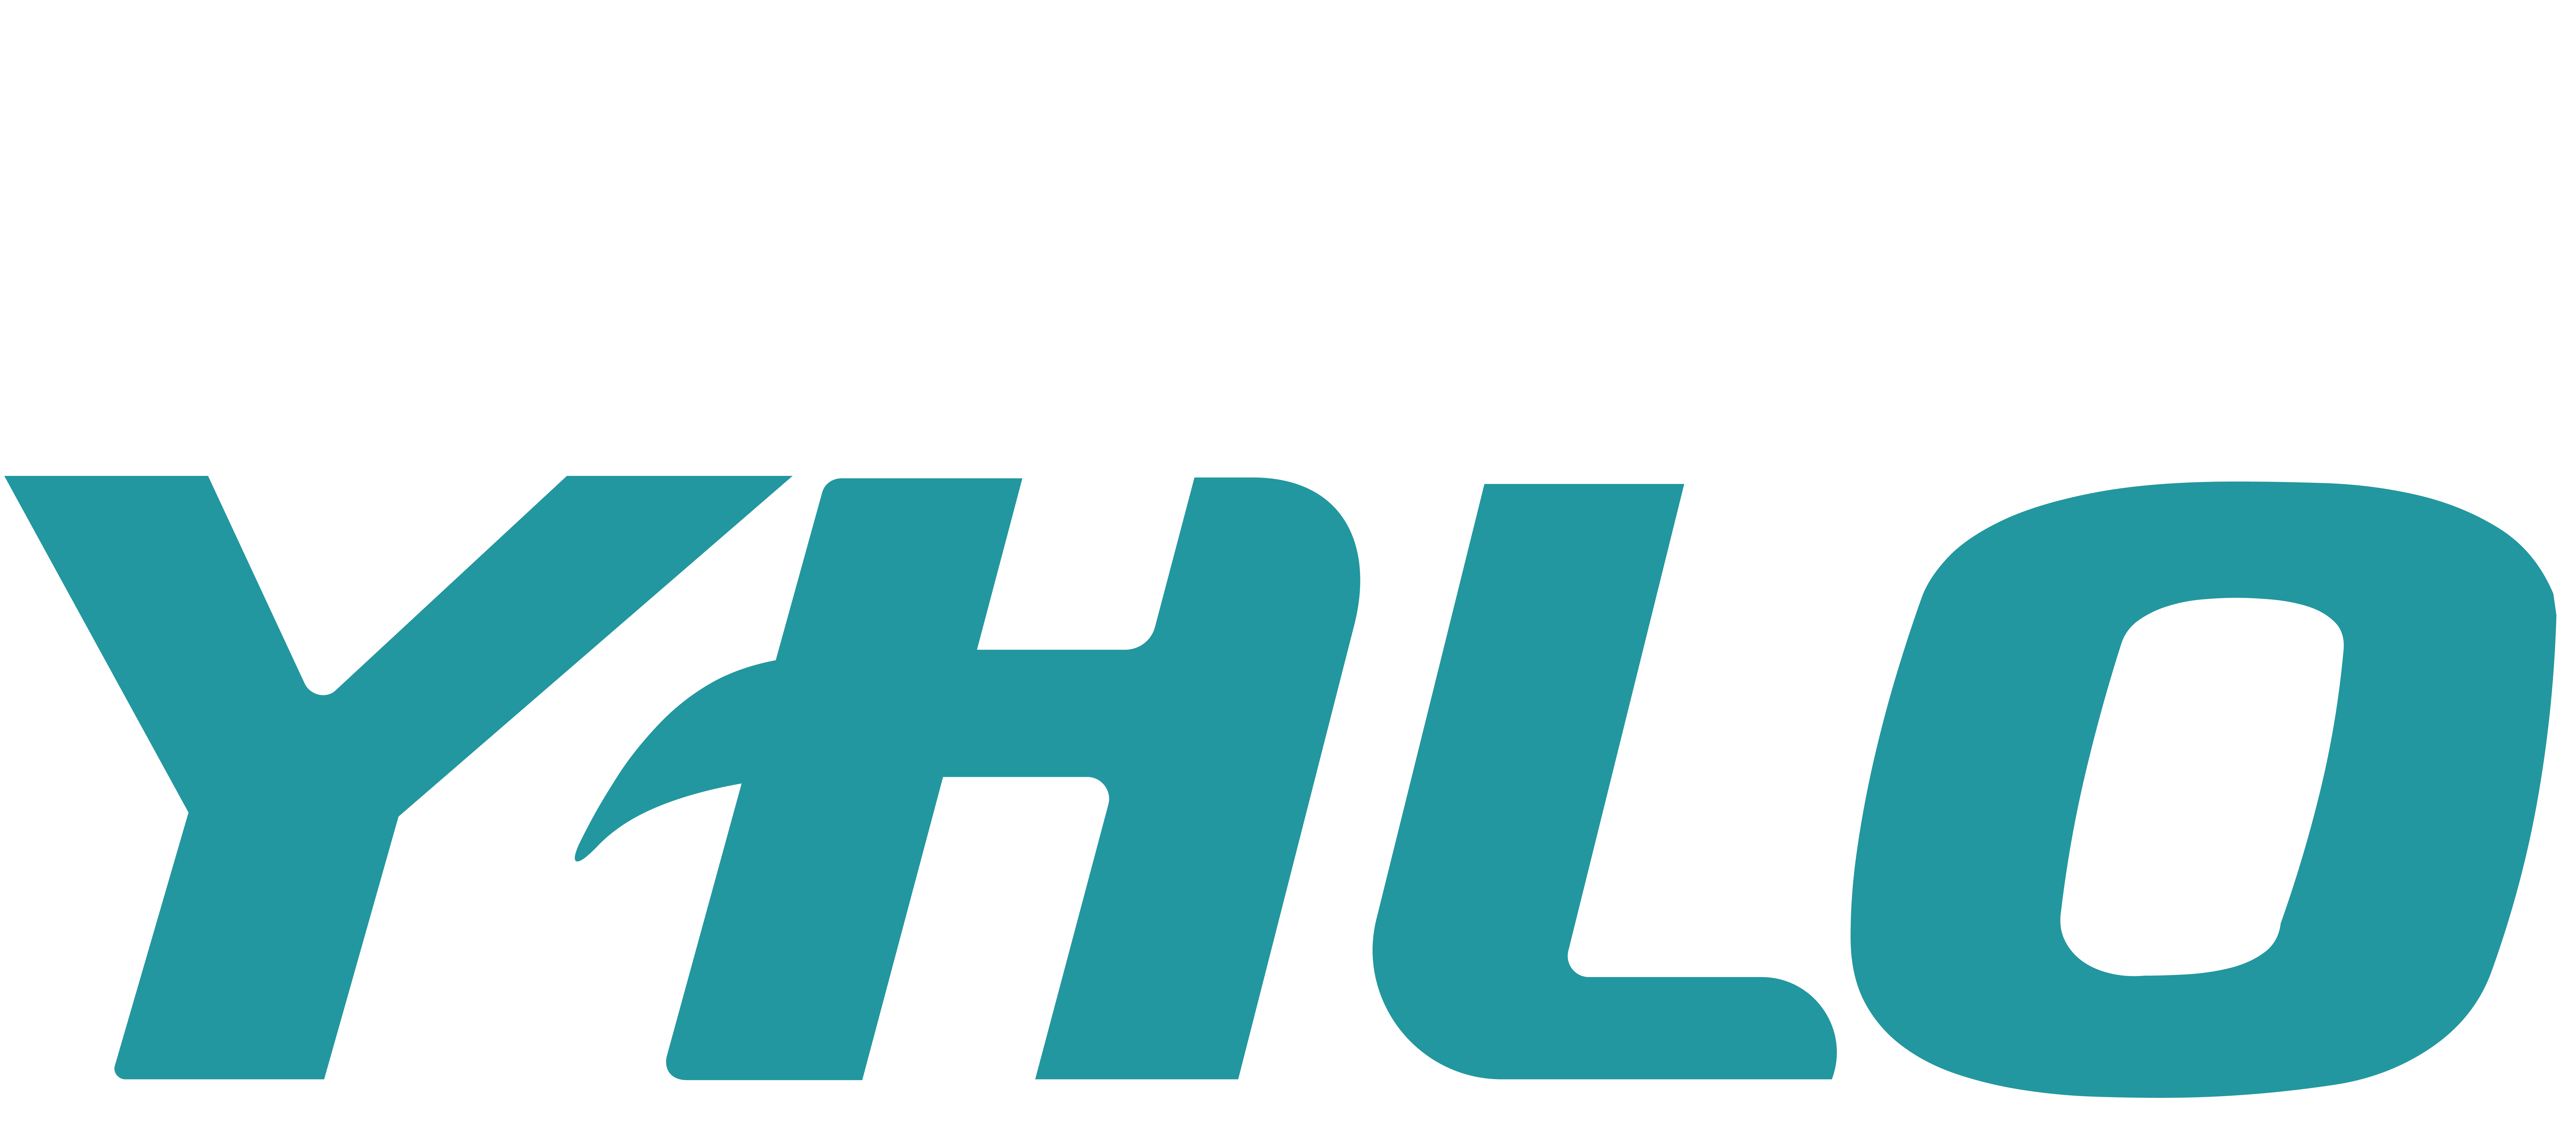 YHLO Biotech Co. Ltd